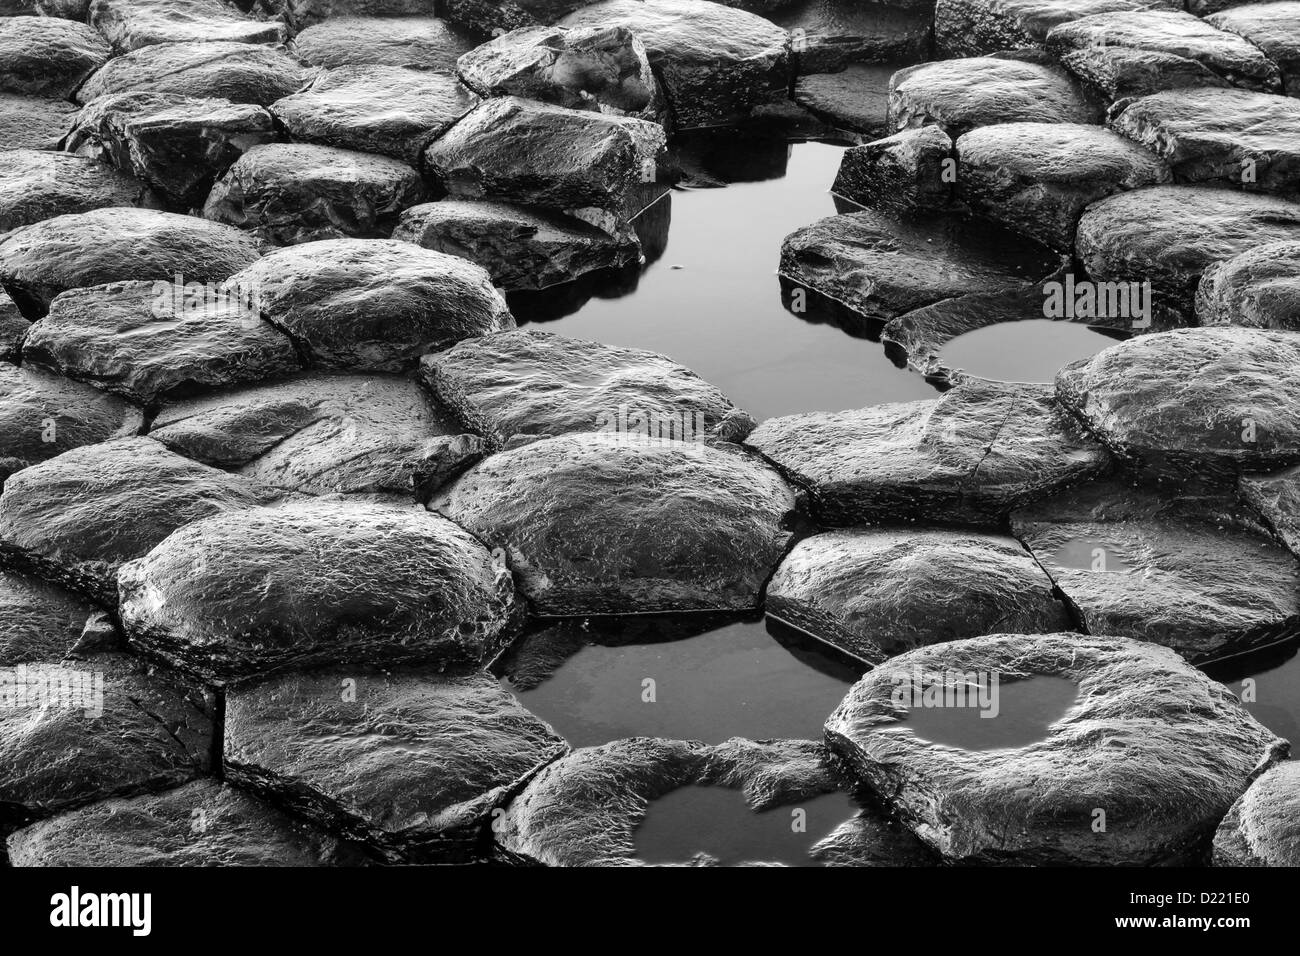 Monochrome details of the texture of the hexagonal basaltic rocks pattern from the famous Giant's Causeway, - Stock Image